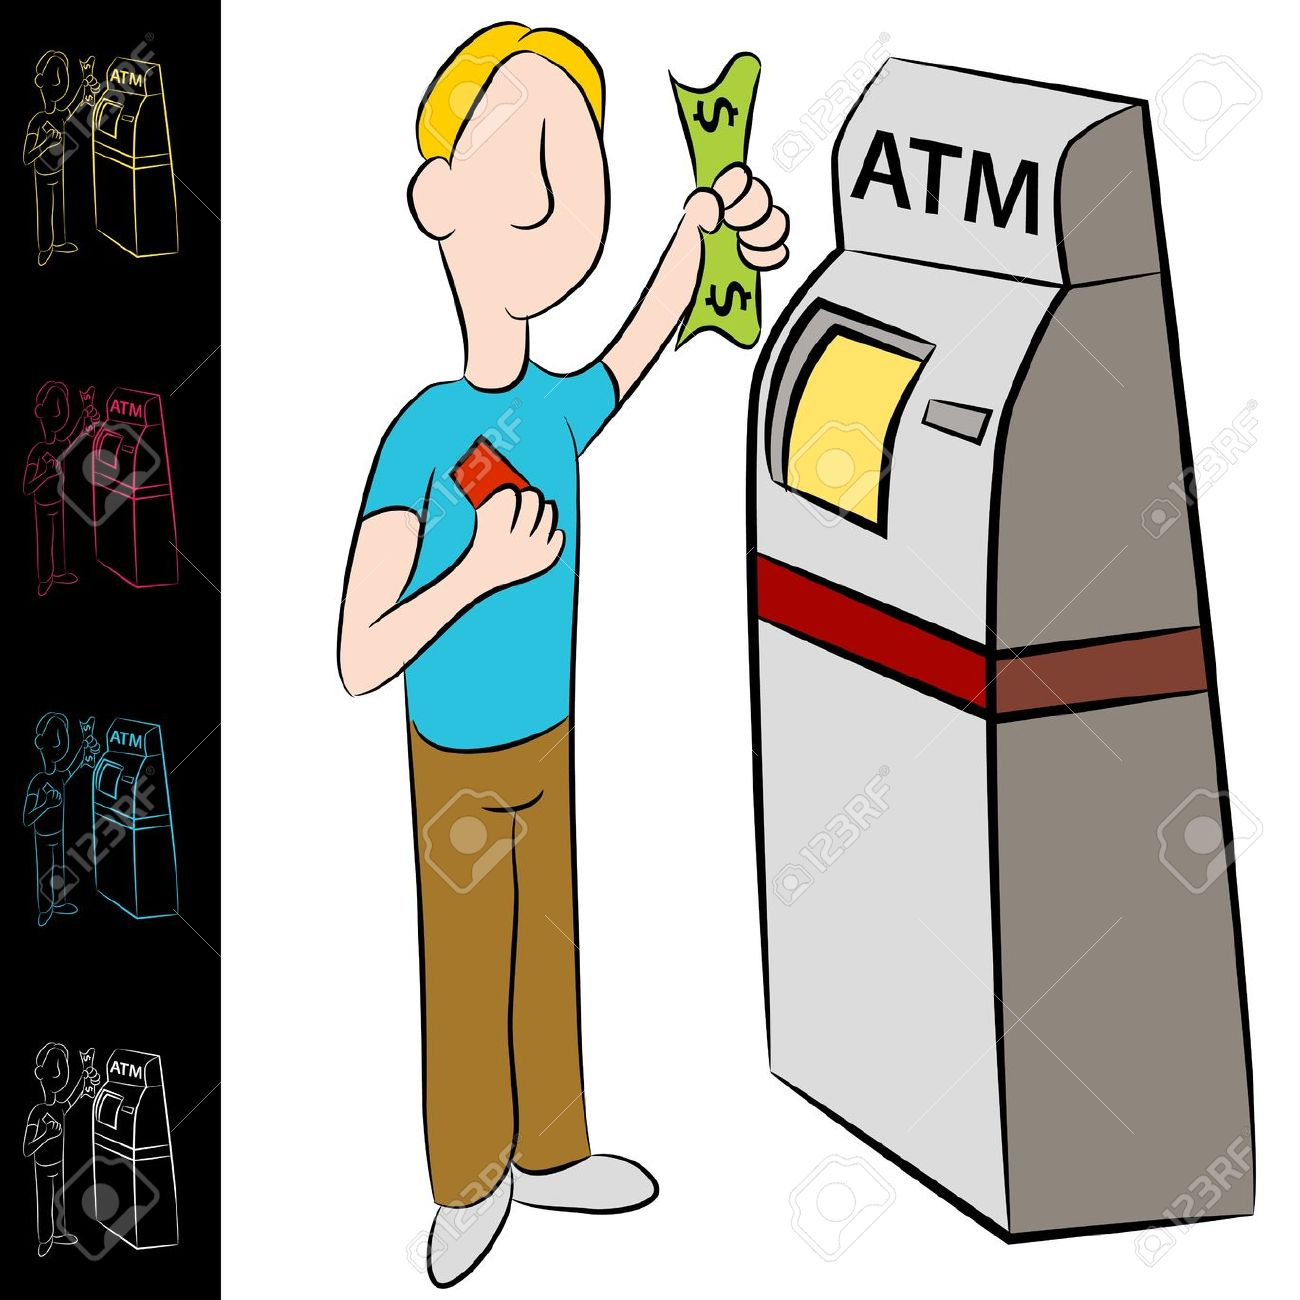 Bank deposit clipart clip art black and white An Image Of A Man Using A Bank Atm Machine. Royalty Free Cliparts ... clip art black and white